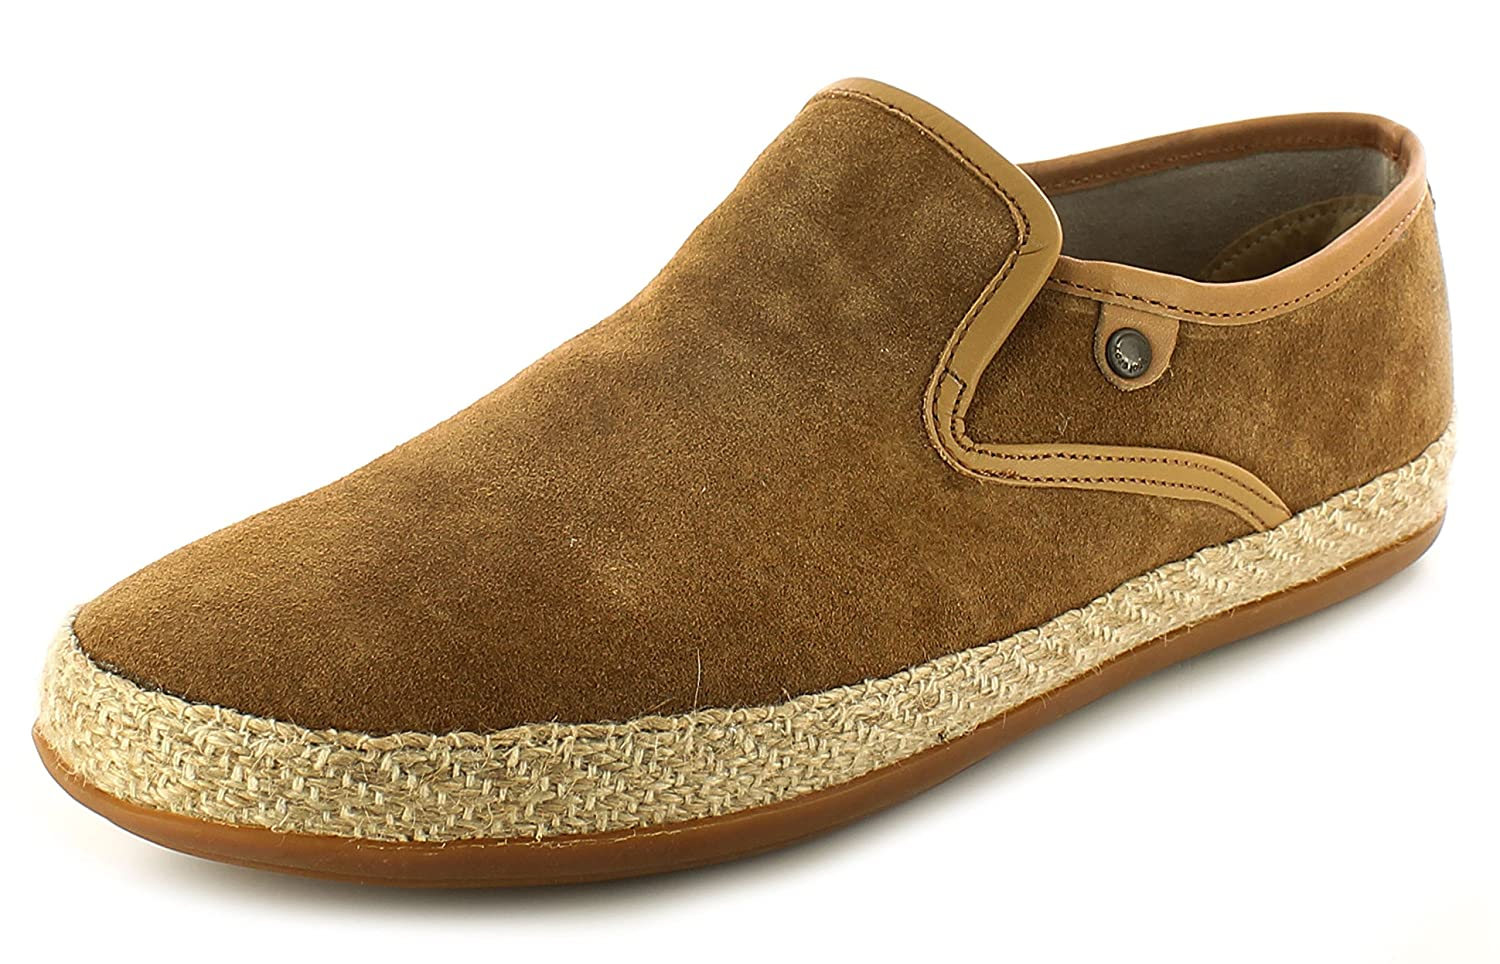 b0514c1b1 Base London SOUND Mens Suede Leather Espadrille Loafers Tan: Amazon.co.uk:  Shoes & Bags